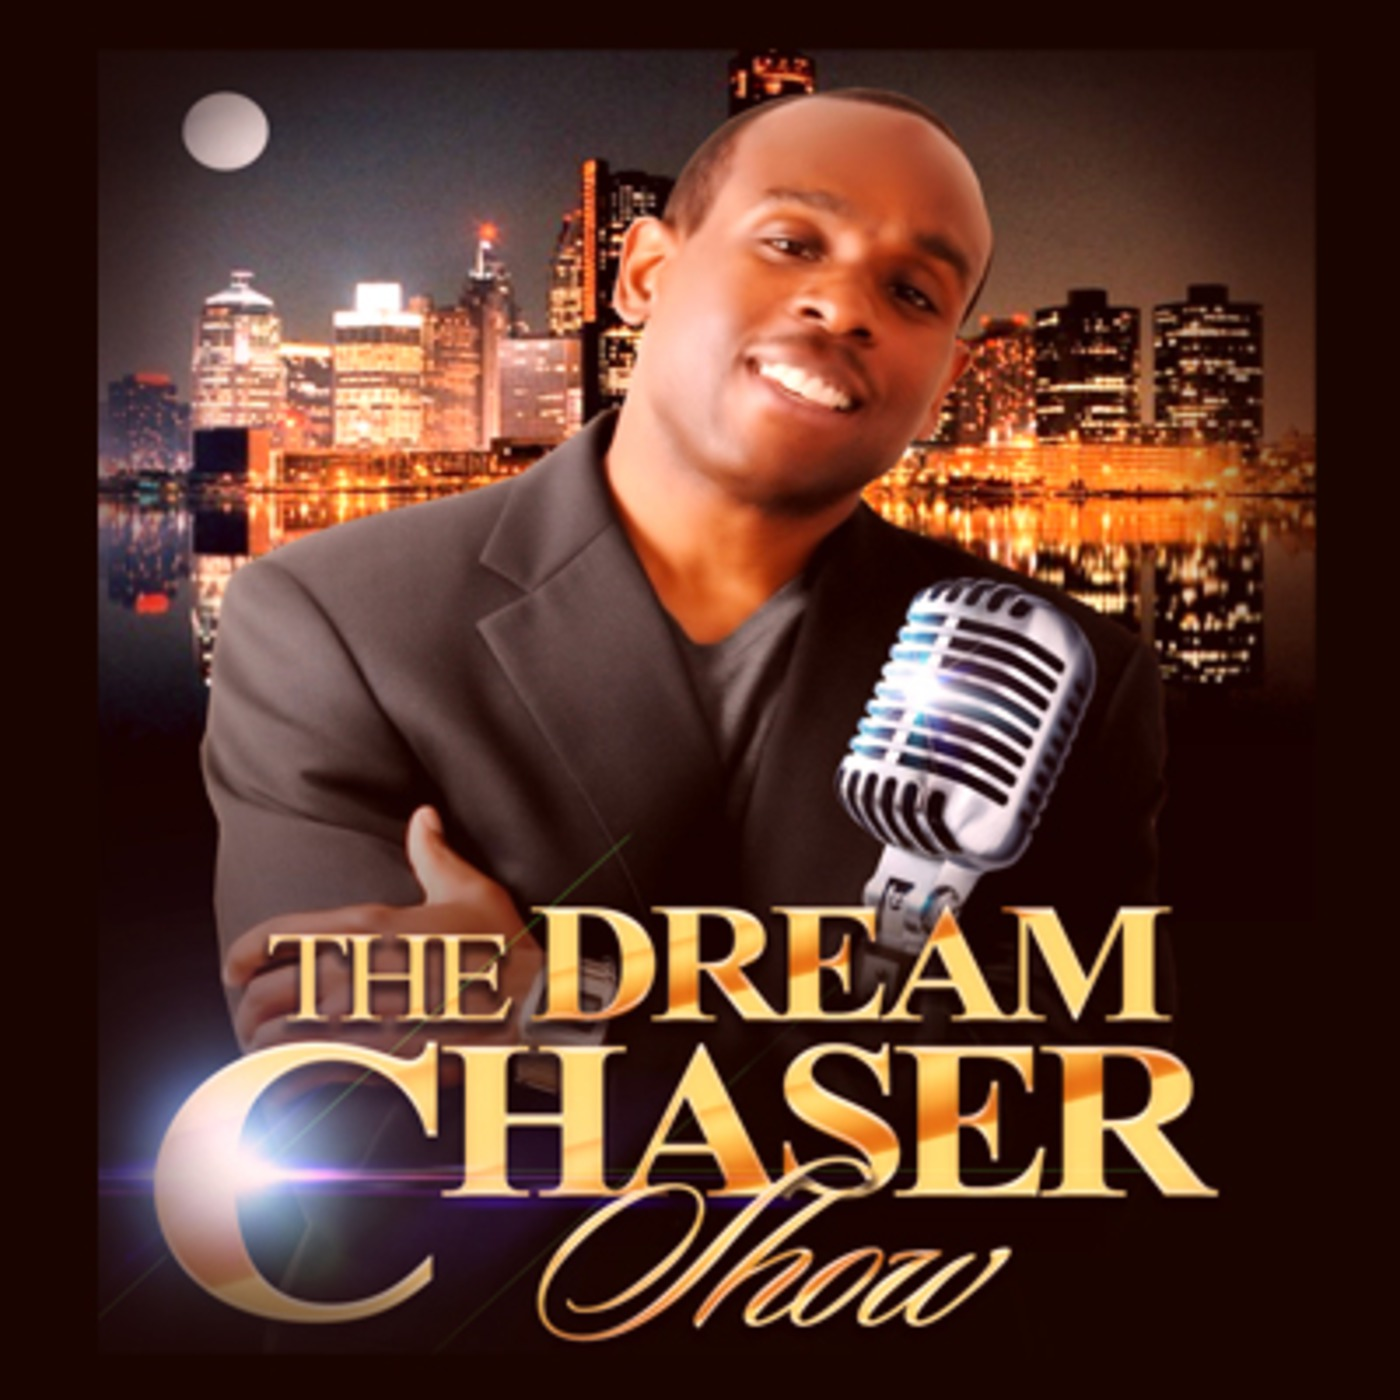 Dream Chaser Show